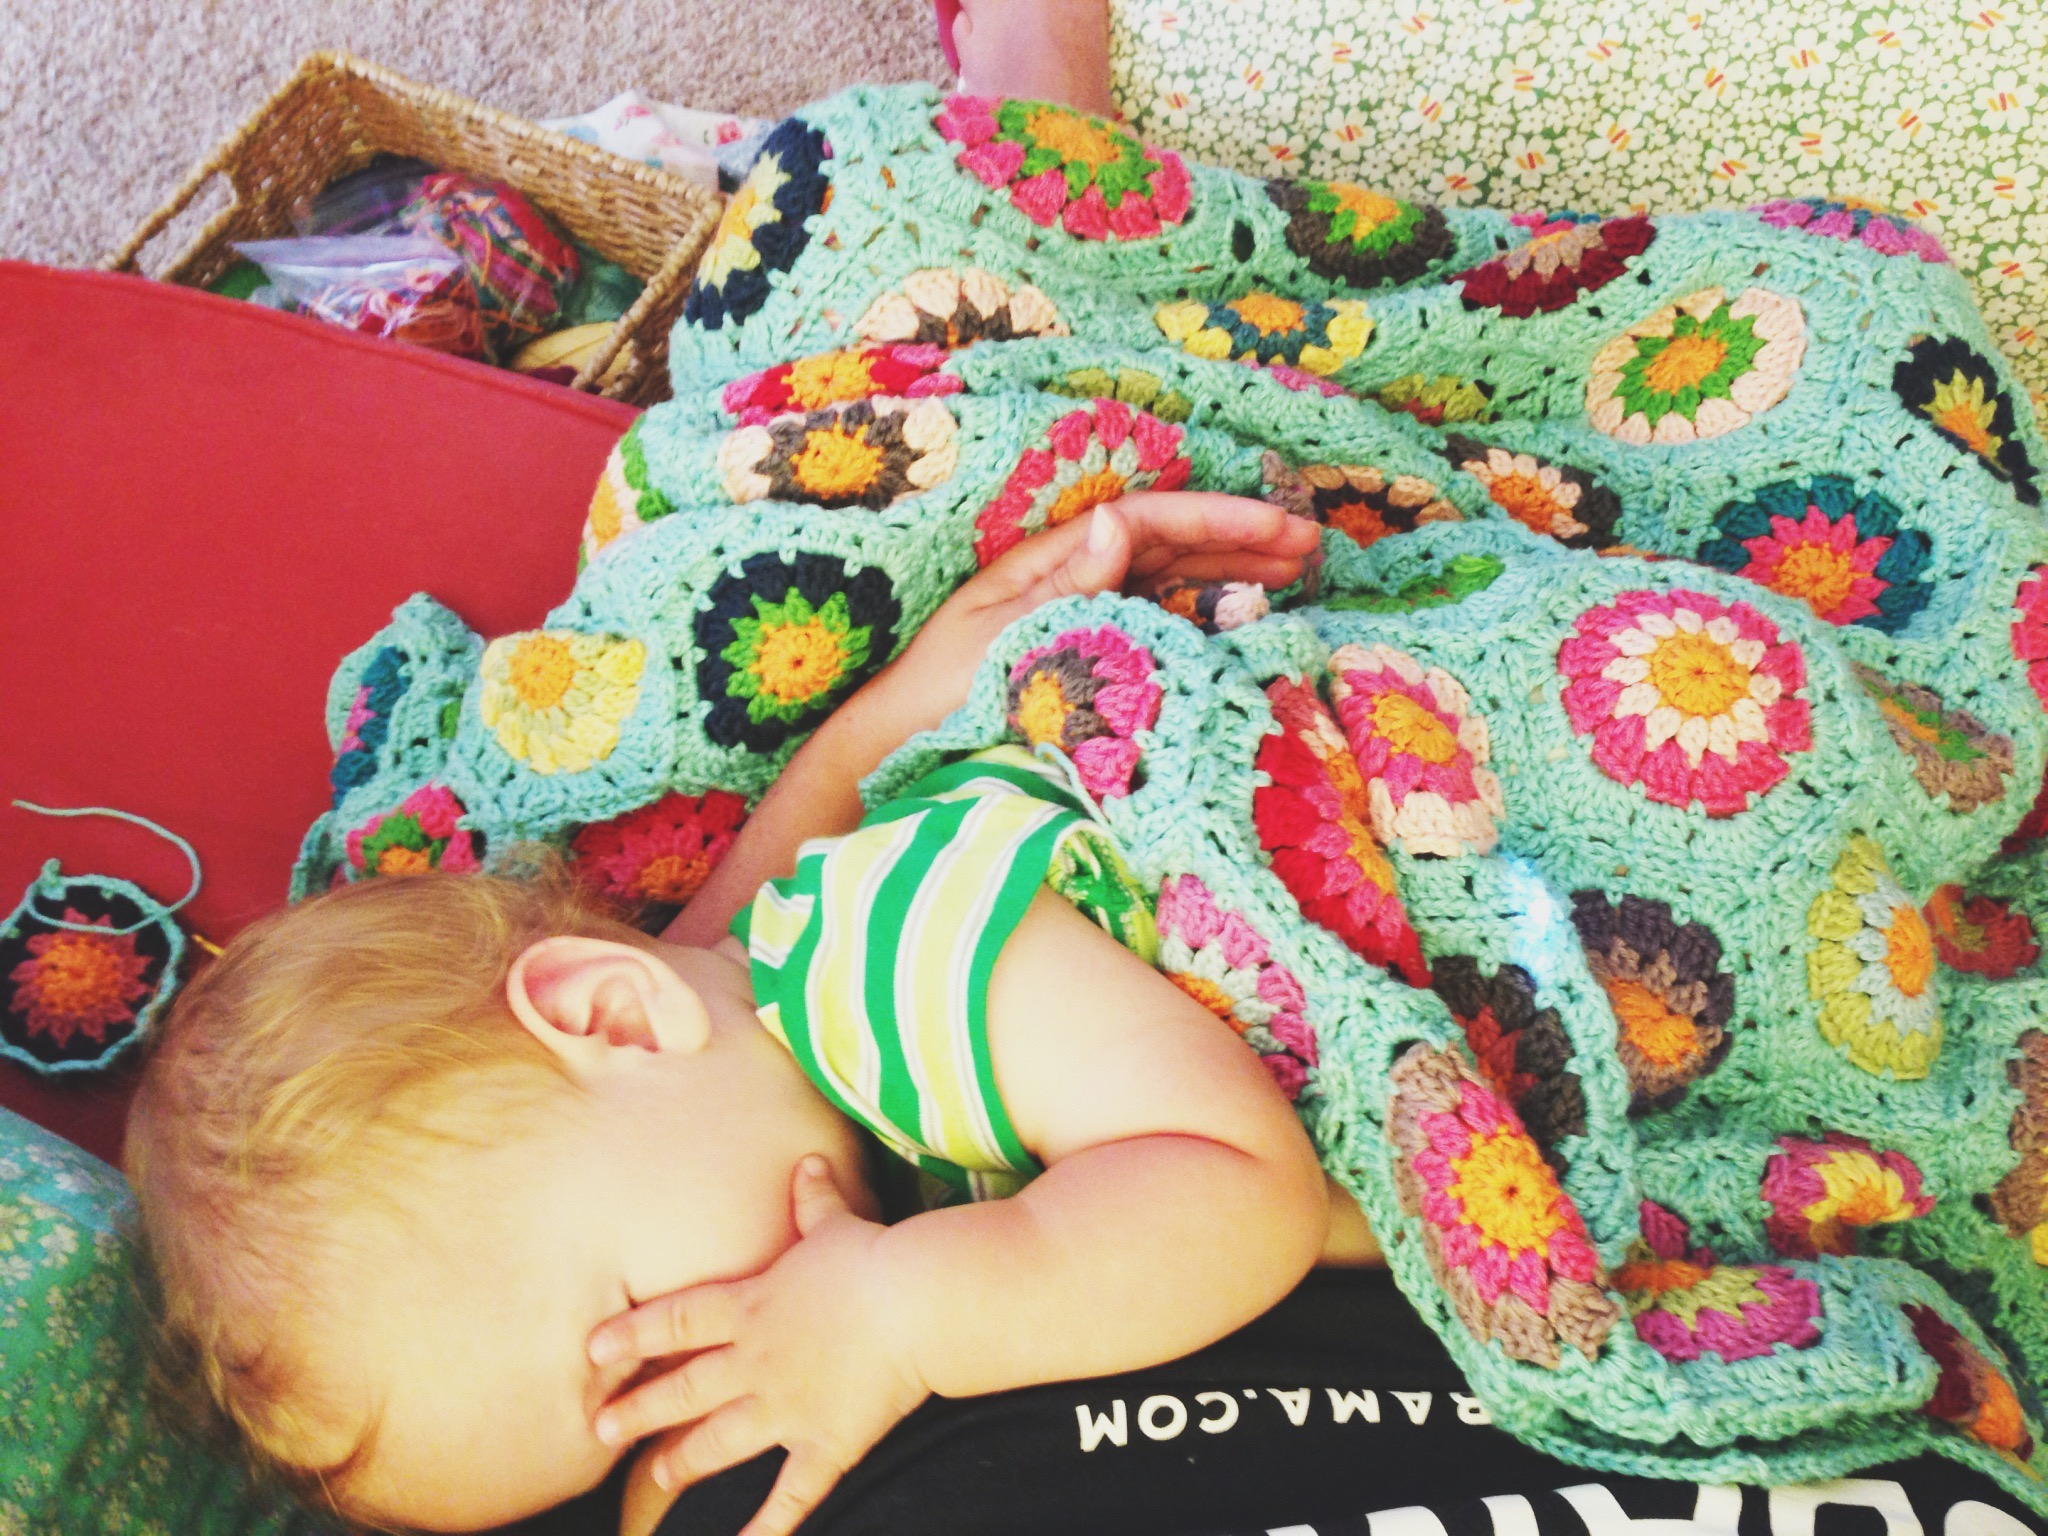 I Force-Weaned My Child, and It Was Awful, for a While Anyway